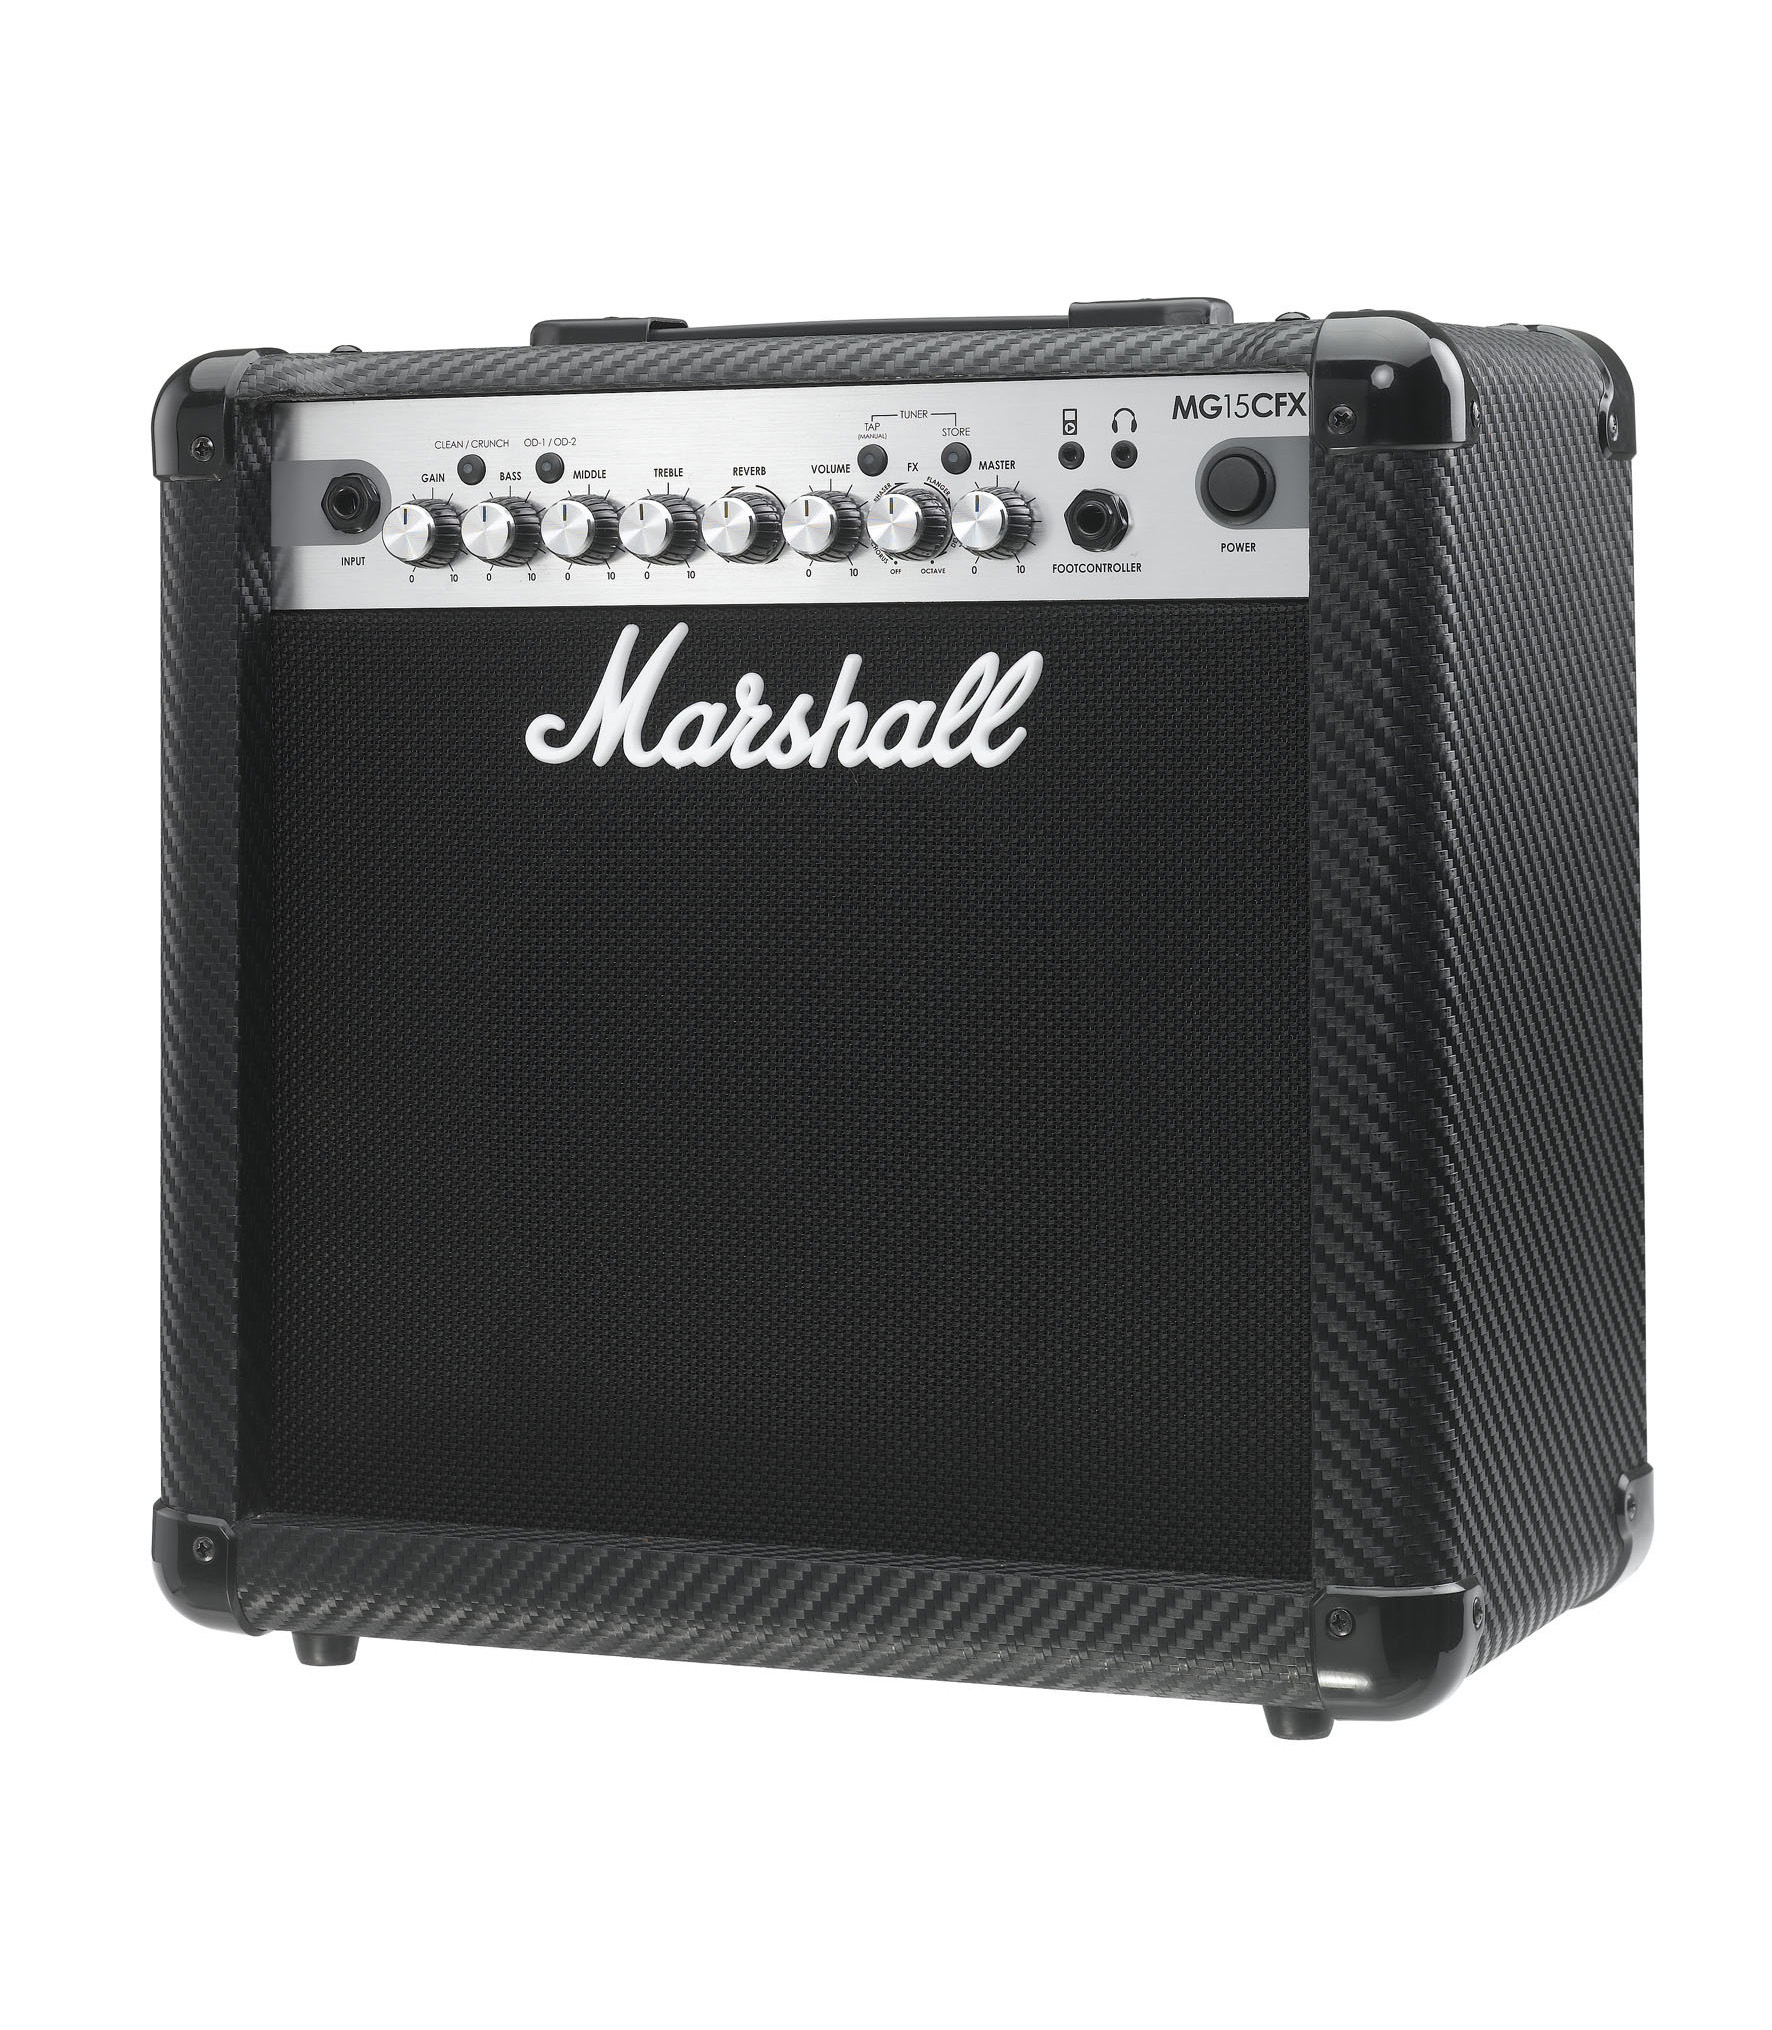 marshall - MG15CFX Solid state Guitar Amp 2 Channe - Melody House